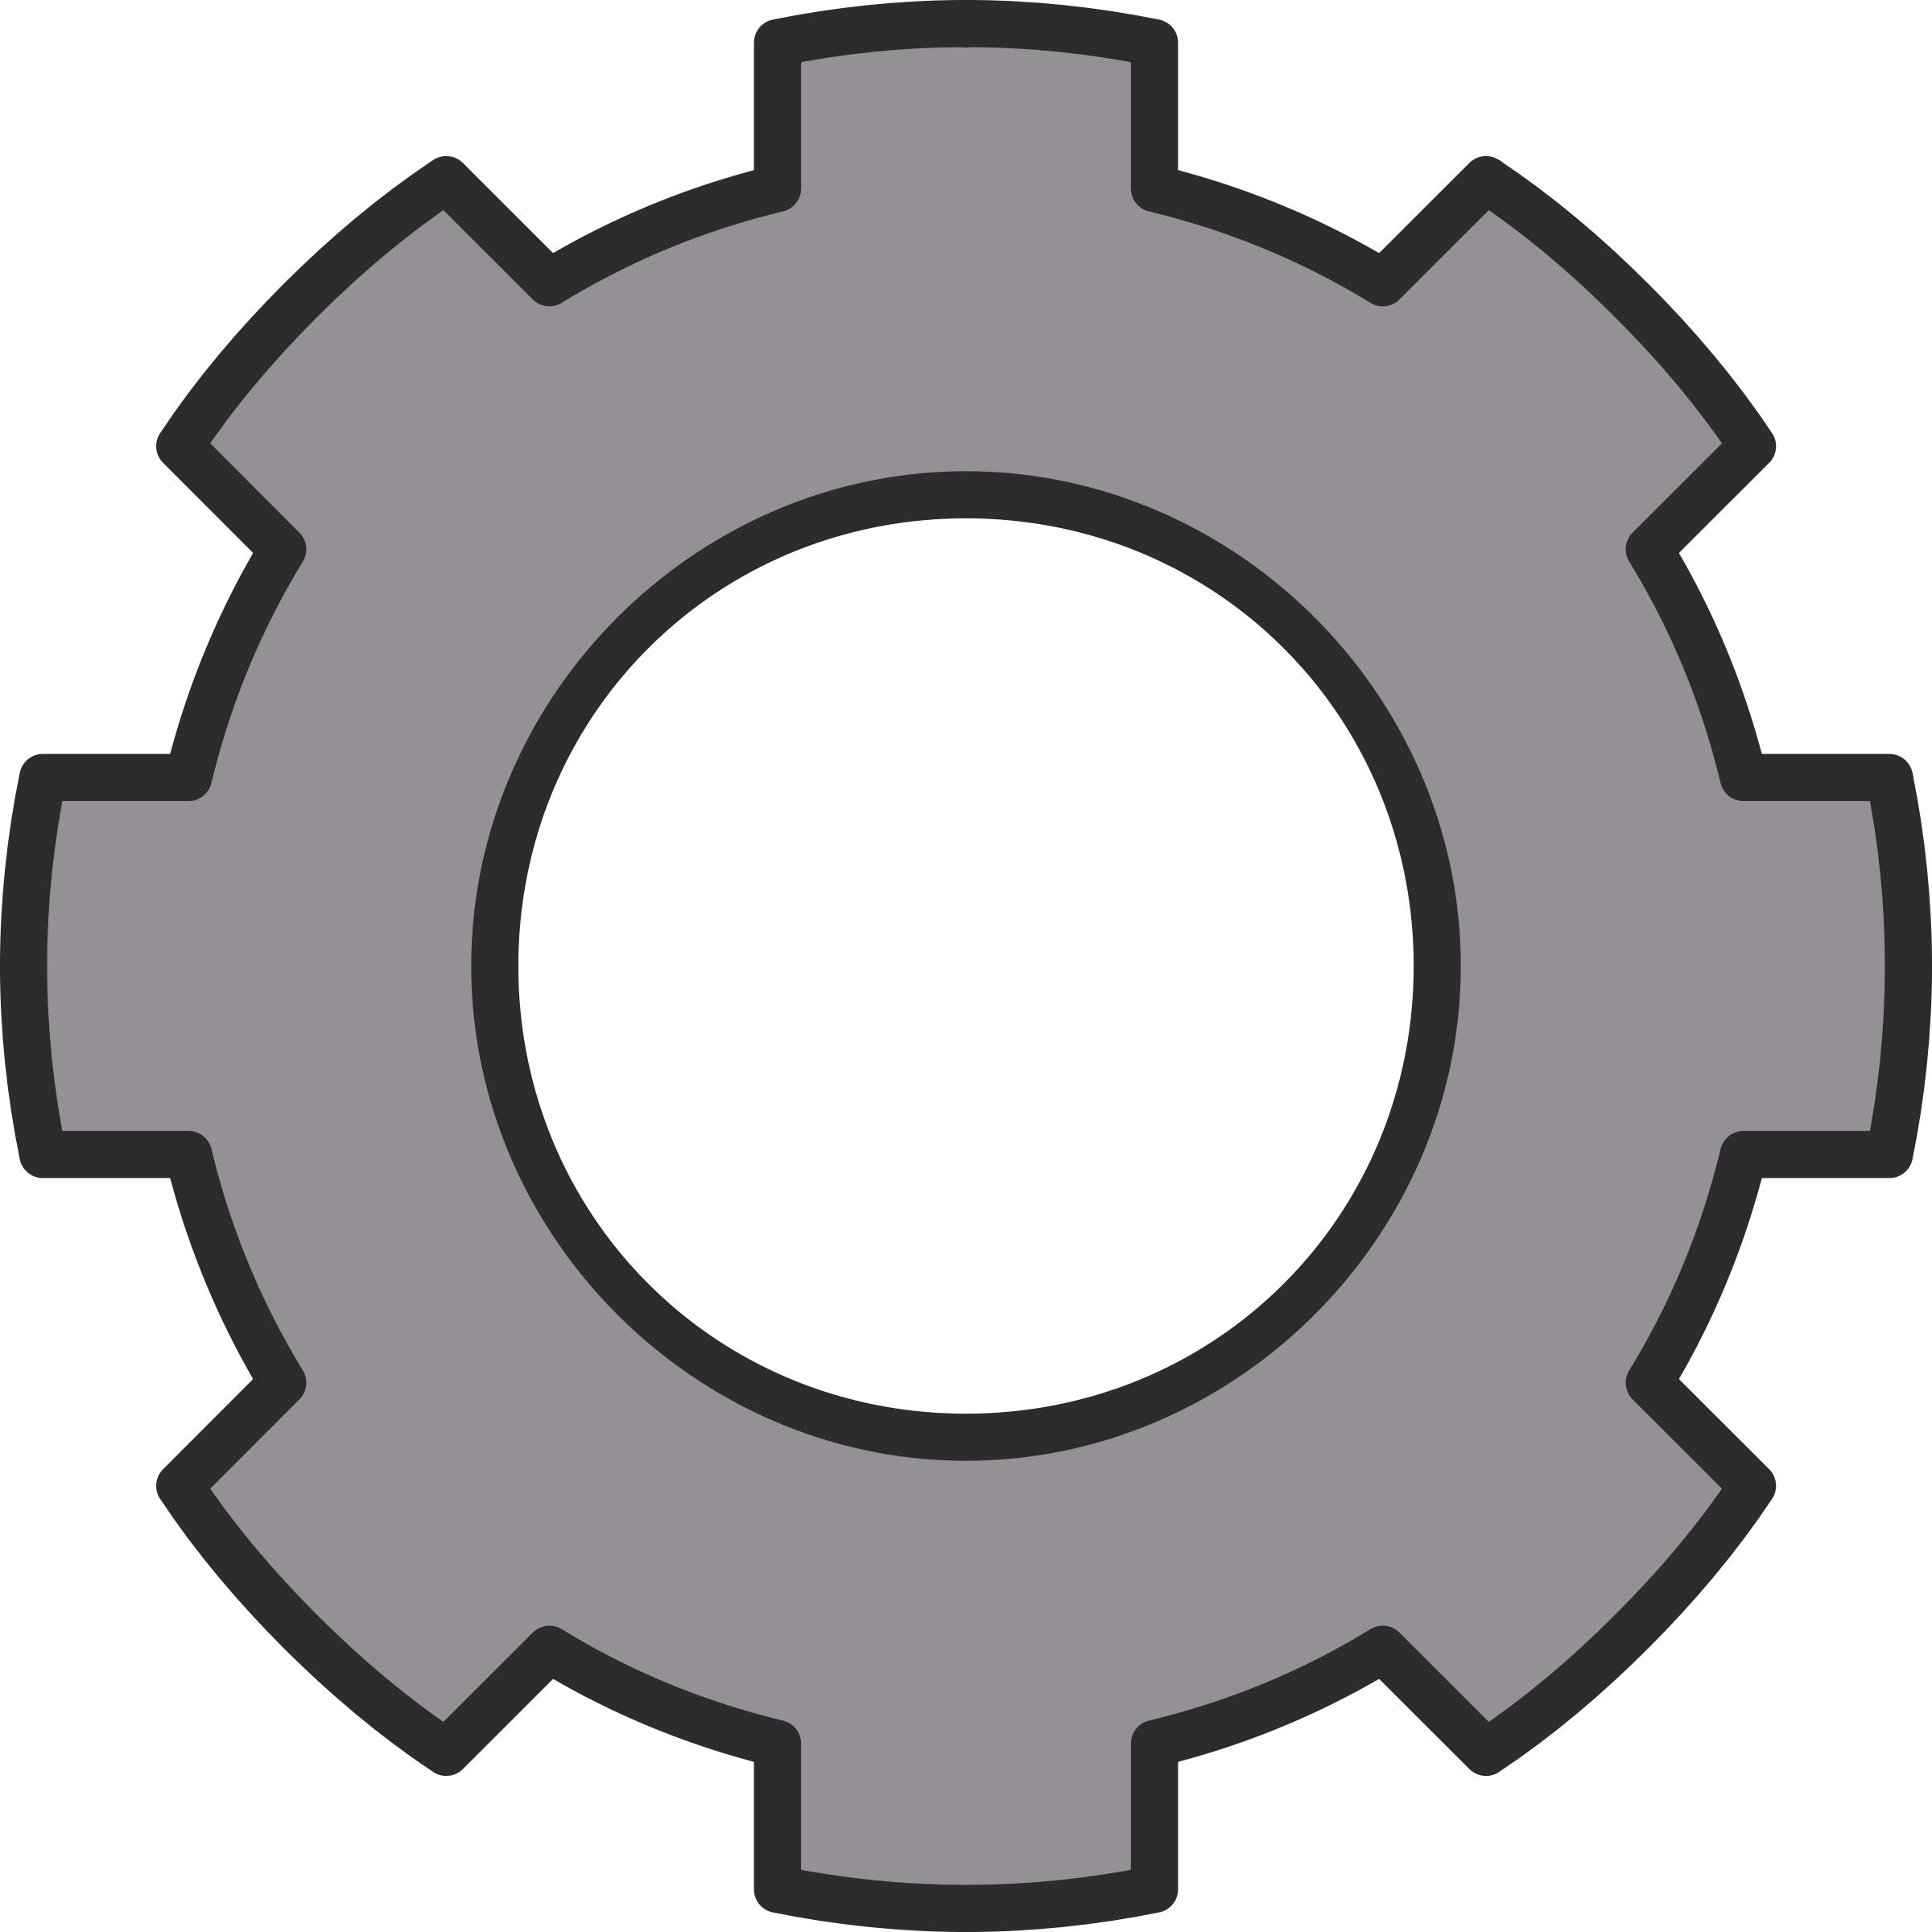 Cogwheel by qubodup